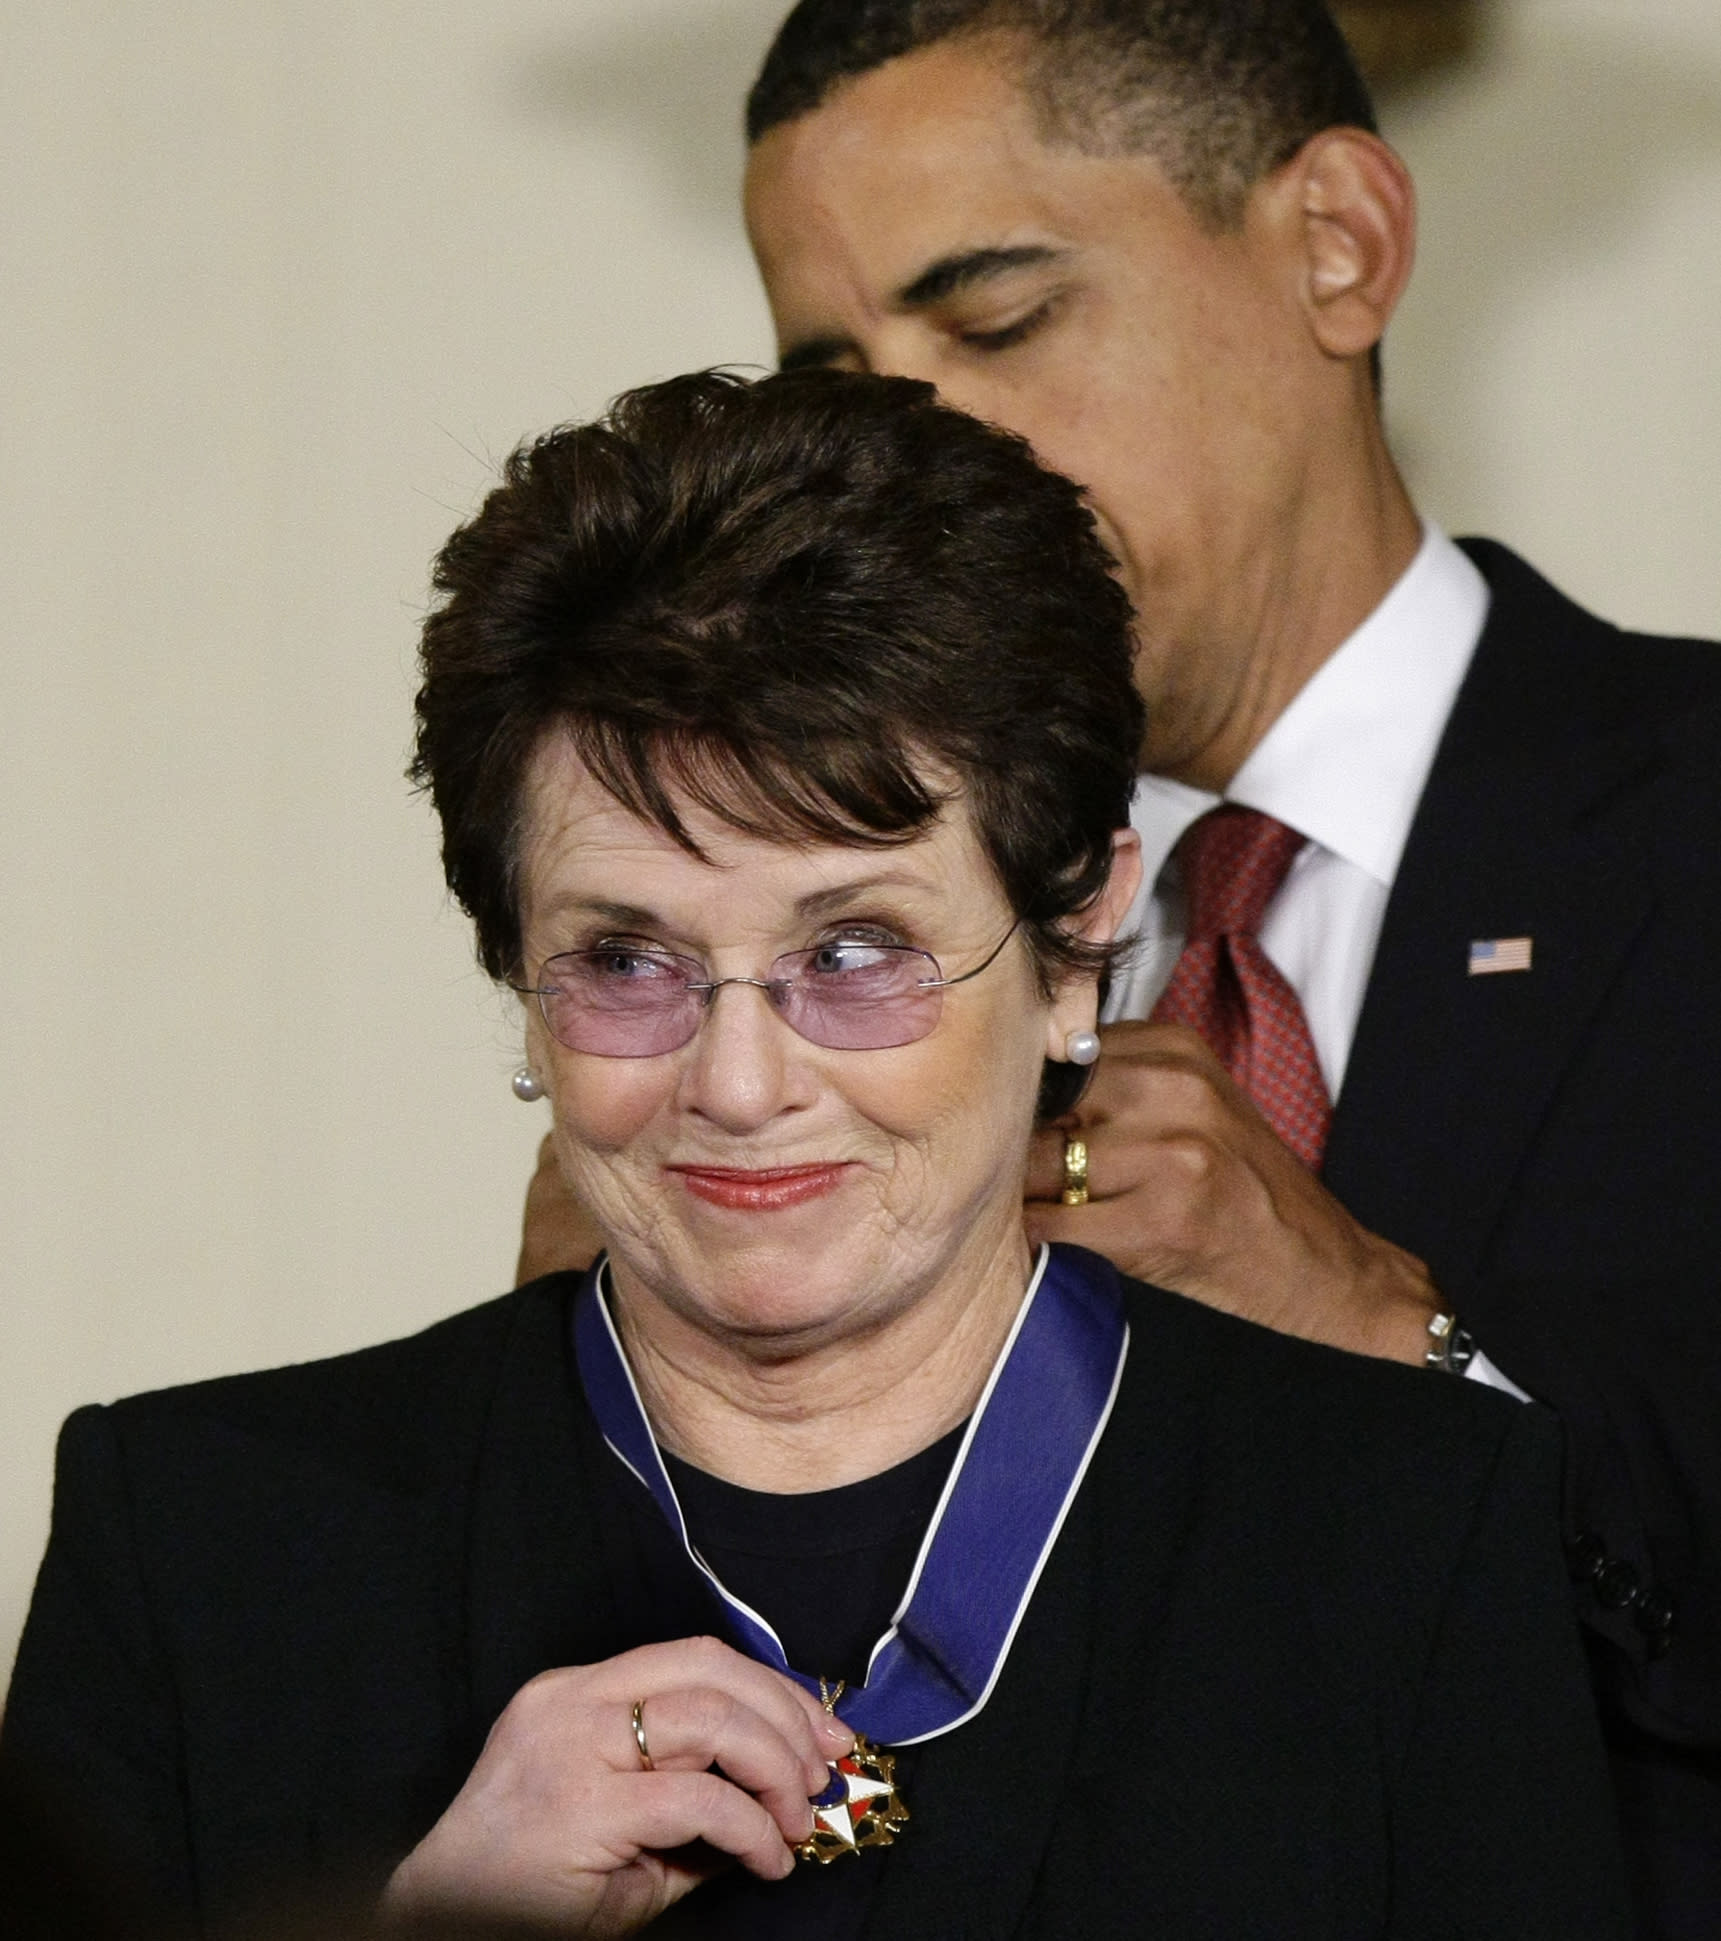 "FILE - In this Aug. 12, 2009 file photo, President Barack Obama presents the 2009 Presidential Medal of Freedom to Billie Jean King, known for winning the famous ""Battle of the Sexes"" tennis match, and championing gender equality issues, during ceremonies at the White House in Washington. King believes standing up to discrimination is the best way to combat it. She will help lead the U.S. delegation in the opening ceremonies at the Sochi Olympics in Russia, which recently passed an anti-gay law. (AP Photo/J. Scott Applewhite, File)"